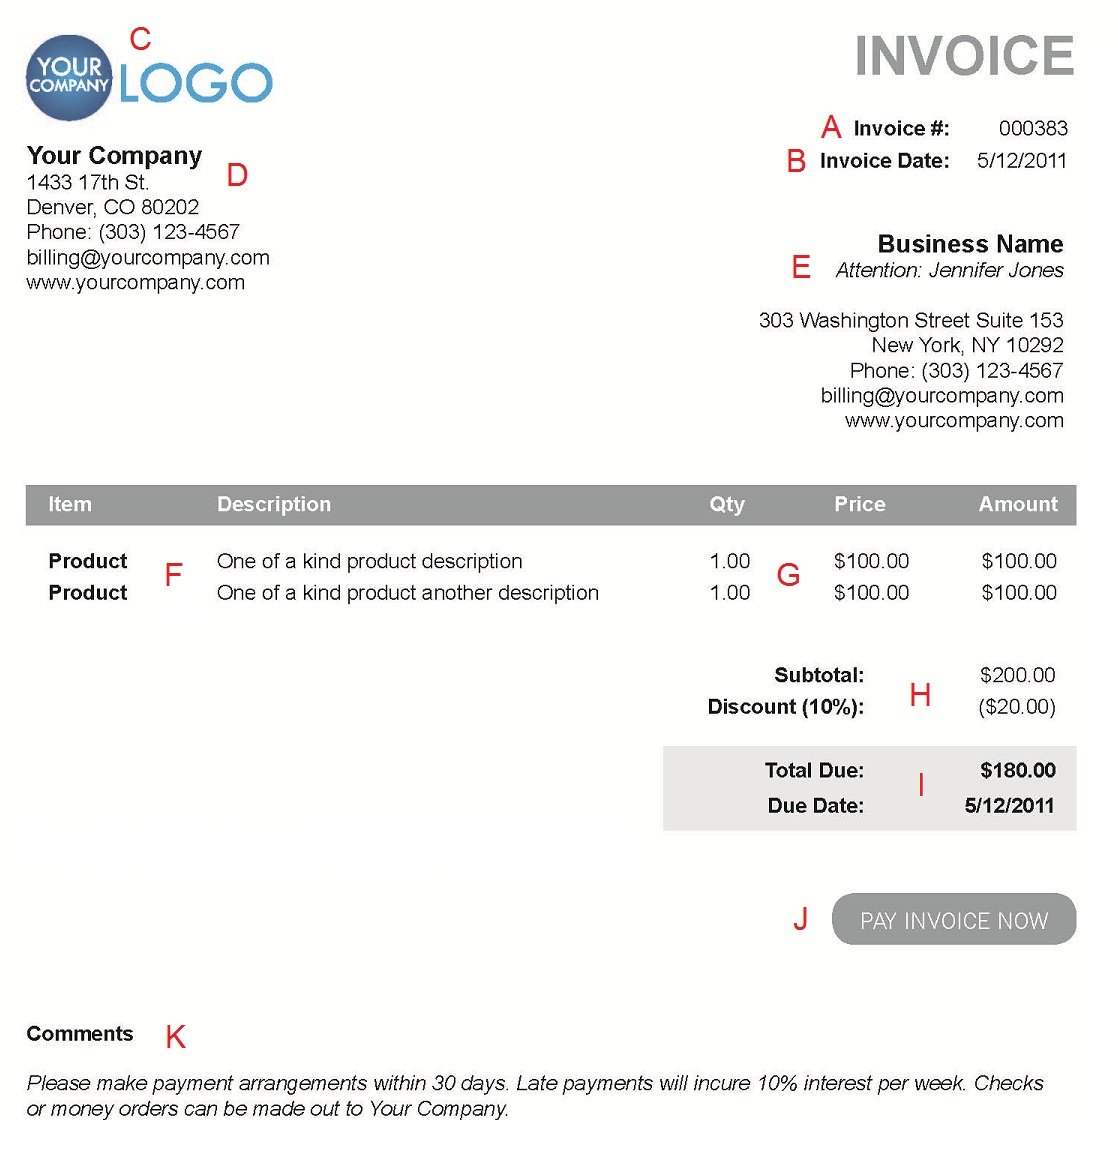 Aaaaeroincus  Terrific The  Different Sections Of An Electronic Payment Invoice With Fascinating A  With Astounding Invoice Document Template Also Free Downloadable Invoice Template Word In Addition Free Business Invoice Software And Standard Invoice Terms As Well As Product Invoice Template Additionally Off Invoice Discount From Paysimplecom With Aaaaeroincus  Fascinating The  Different Sections Of An Electronic Payment Invoice With Astounding A  And Terrific Invoice Document Template Also Free Downloadable Invoice Template Word In Addition Free Business Invoice Software From Paysimplecom